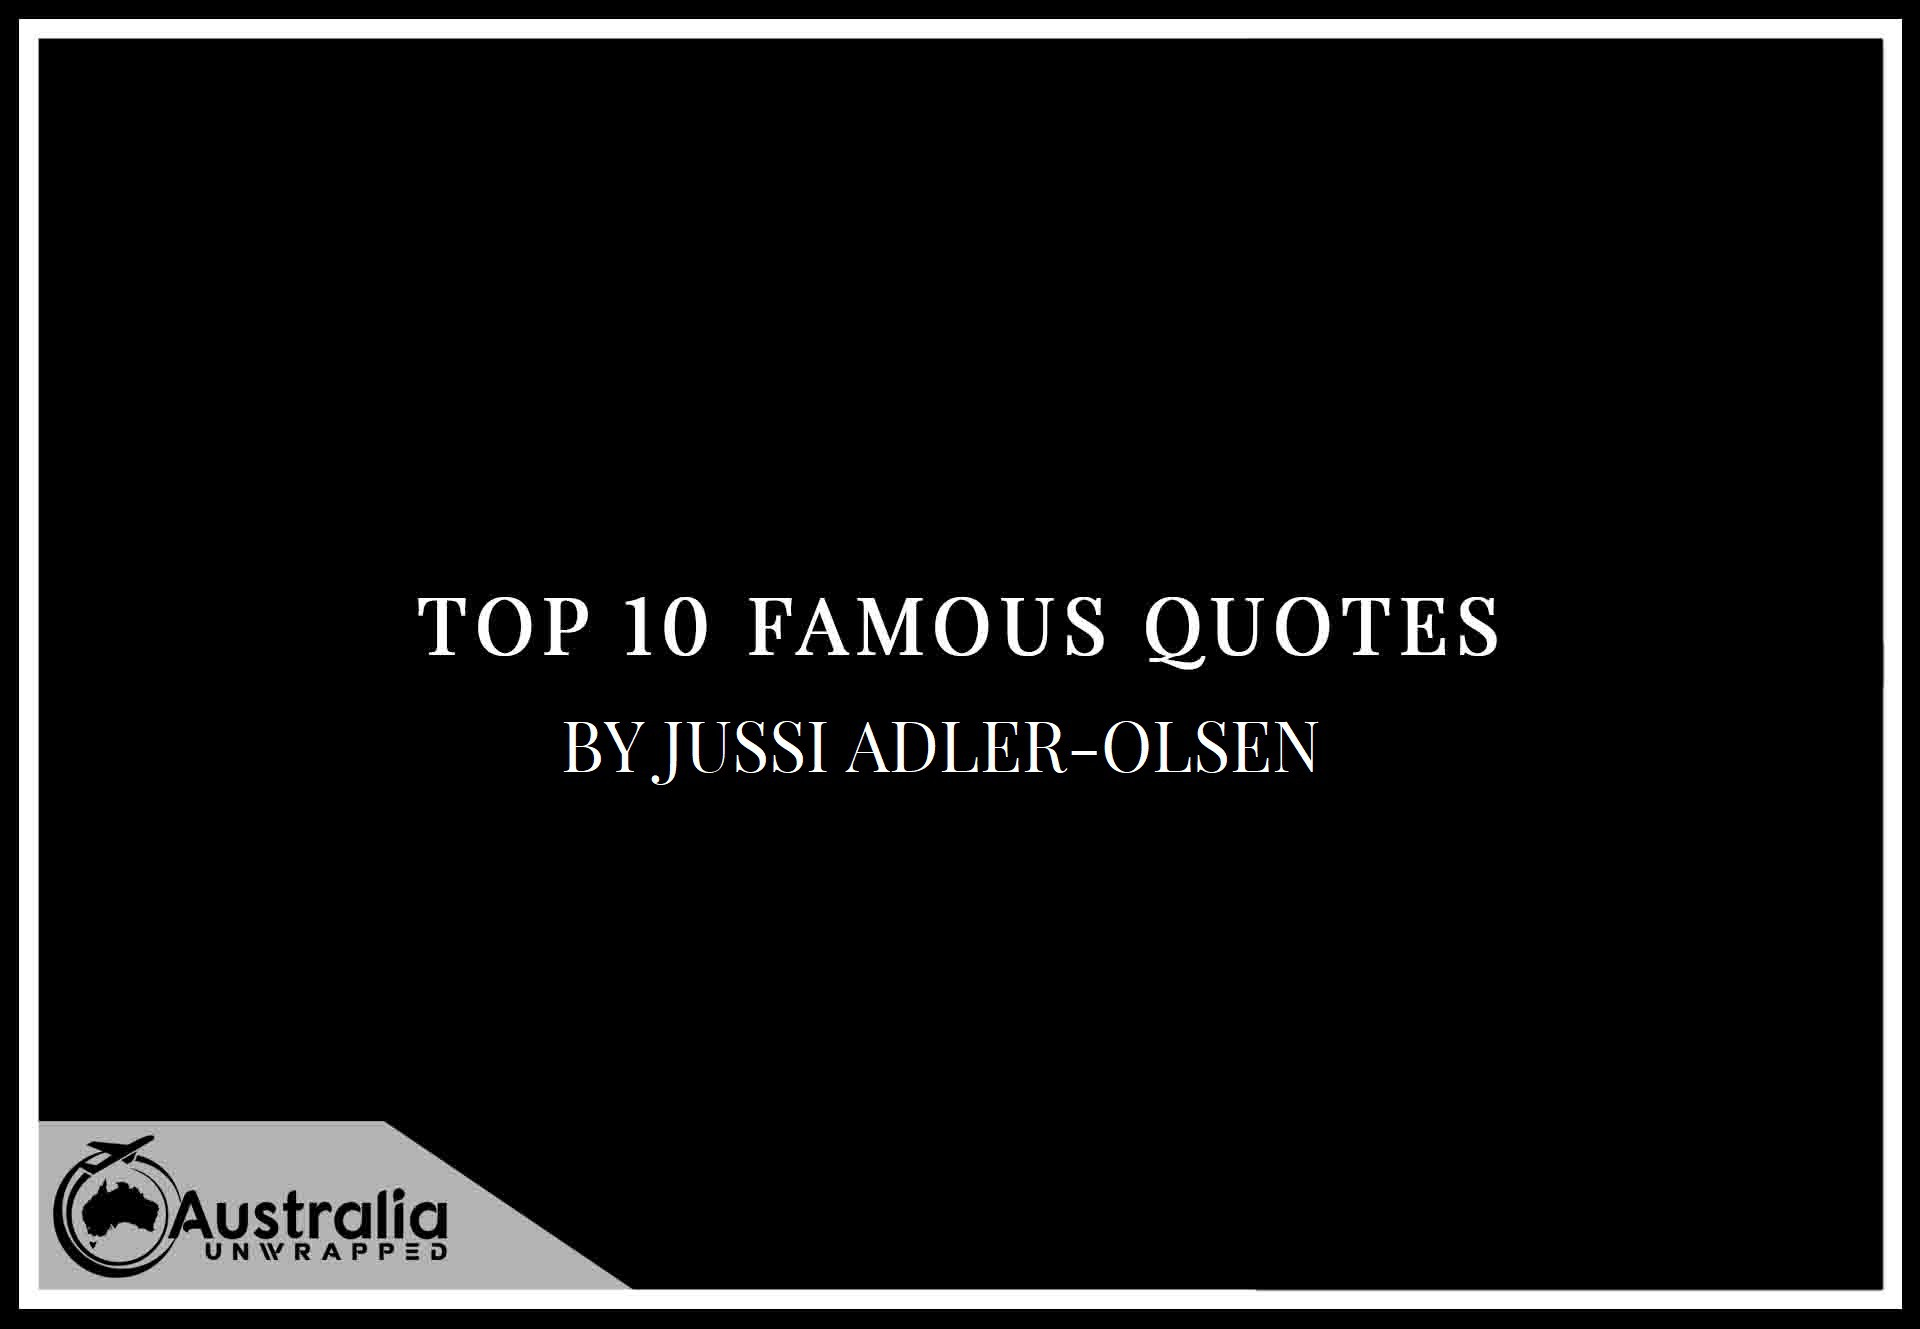 Top 10 Famous Quotes by Author Jussi Adler-Olsen